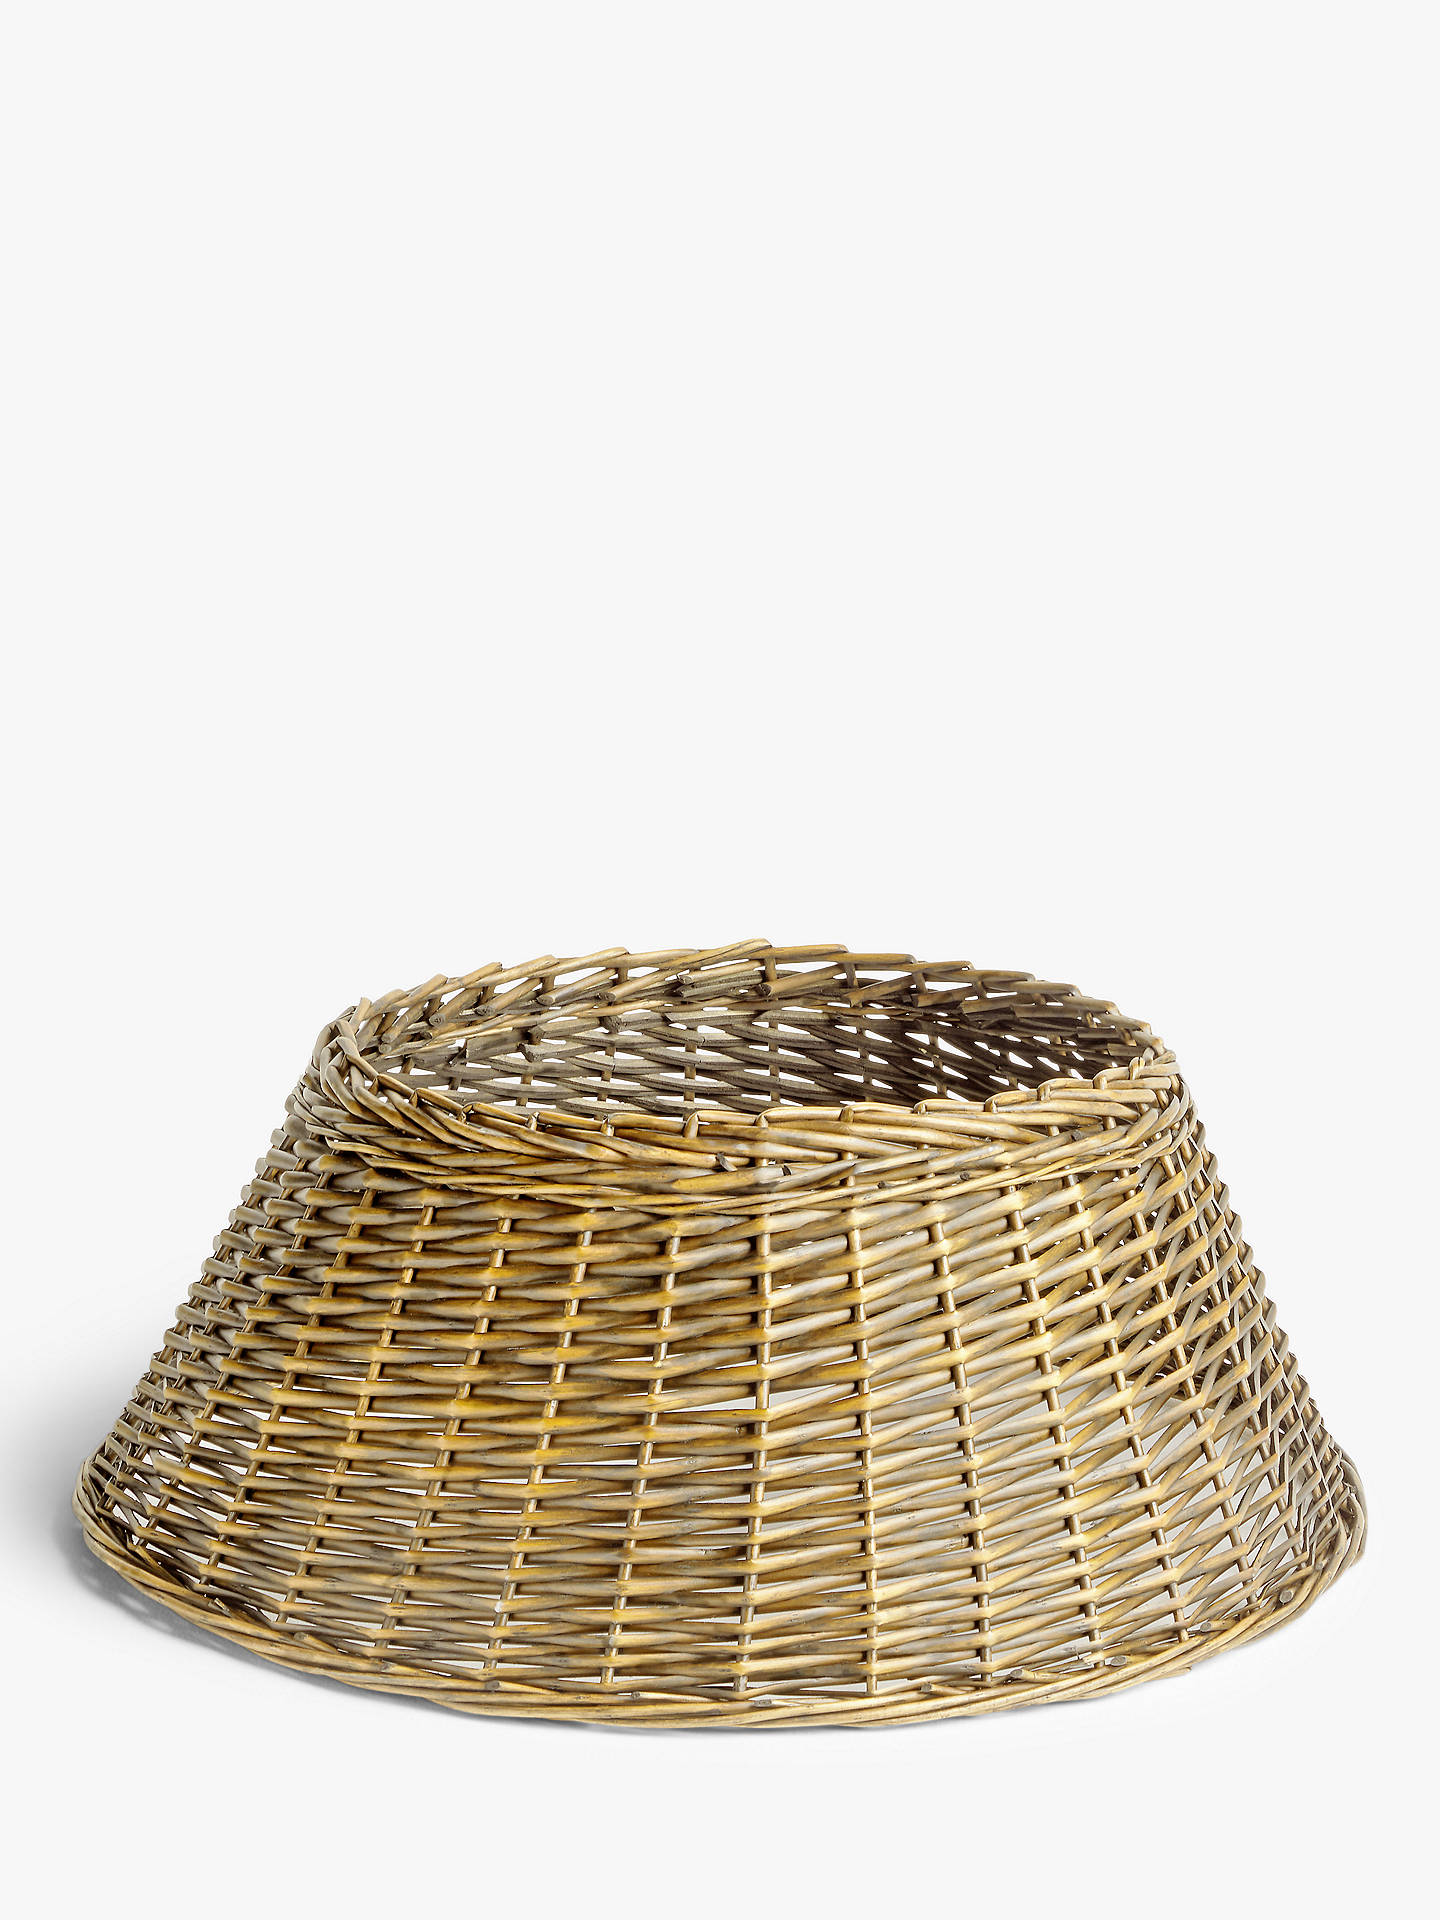 Buy John Lewis & Partners Willow Tree Skirt, Natural, Extra Large Online at johnlewis.com